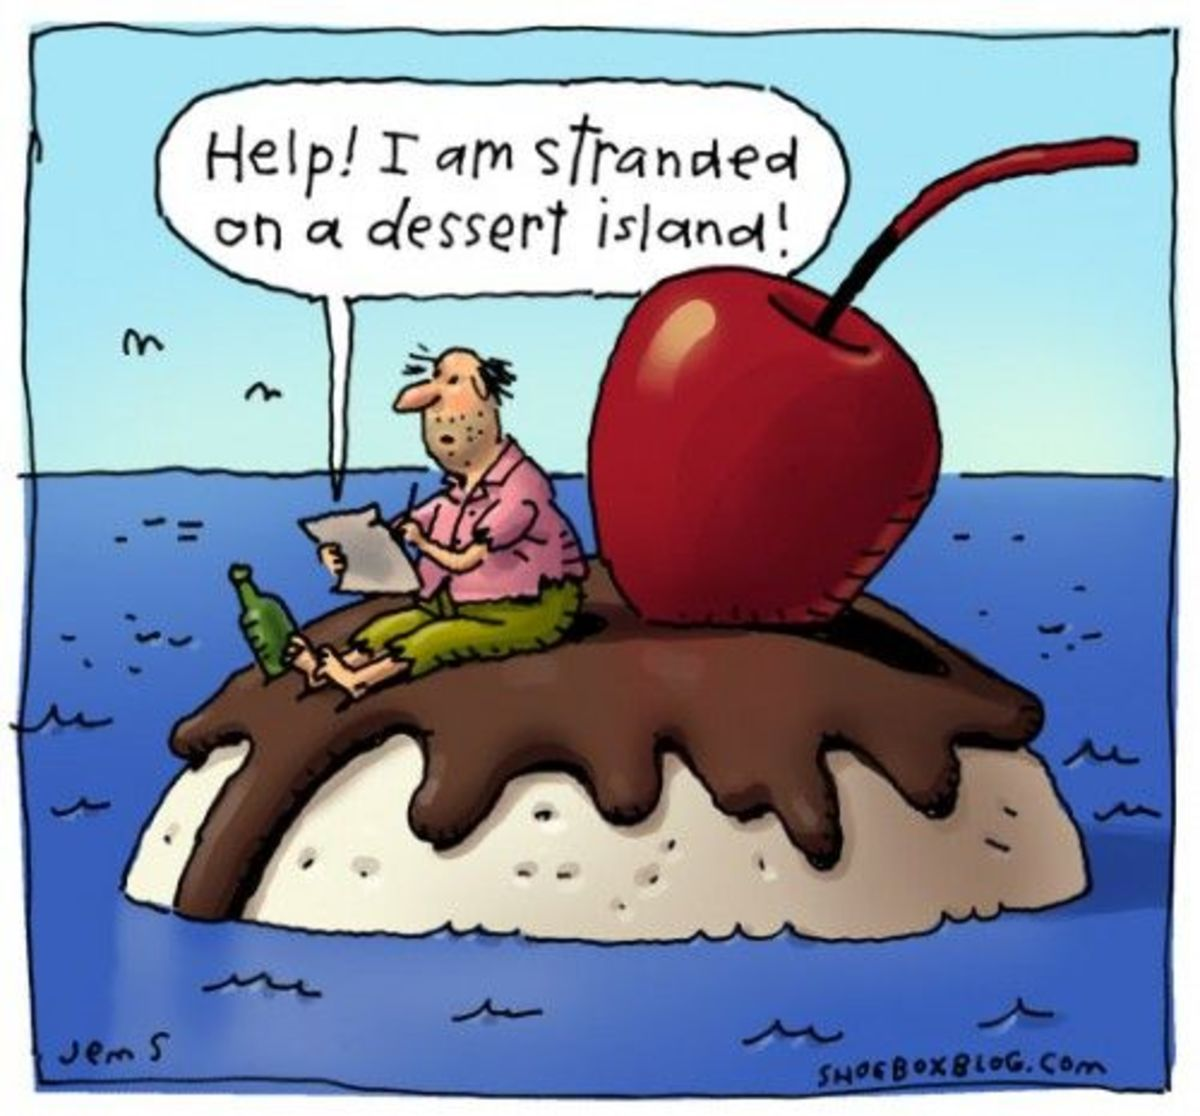 Don't desert your desserts!